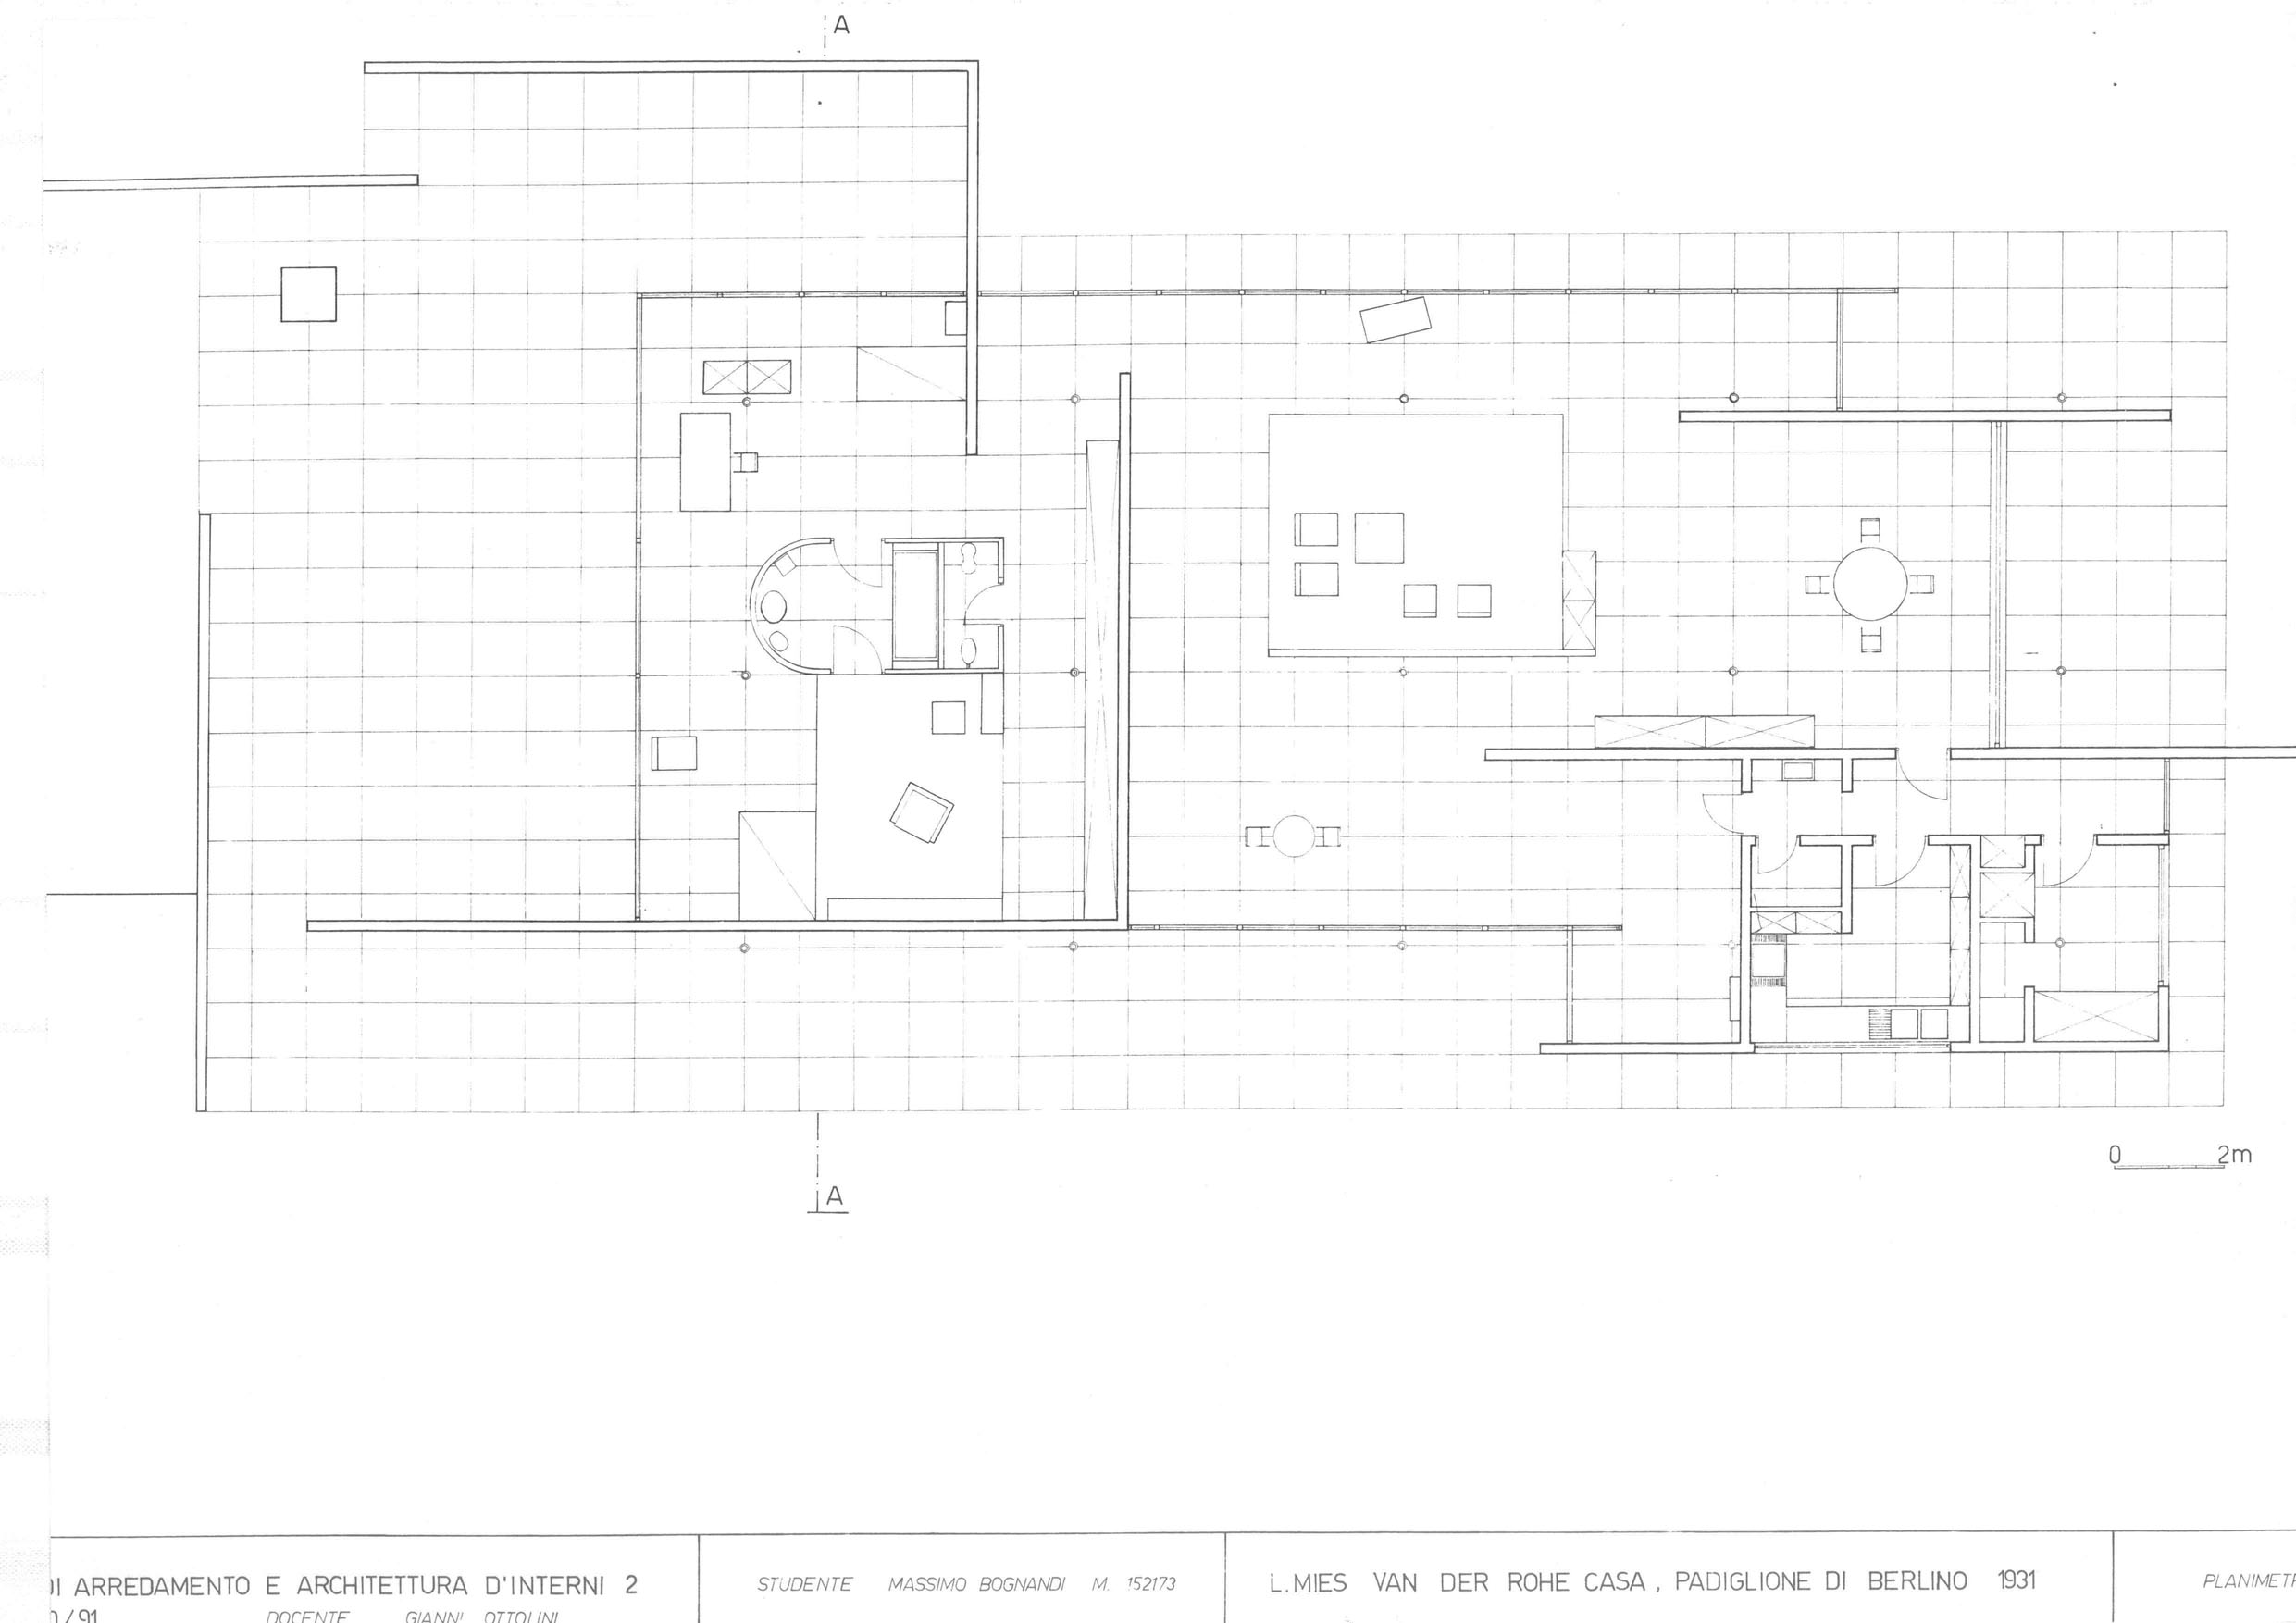 Beautiful House Plans With Storage #2: Mies_1931_casamodello_0015.jpg